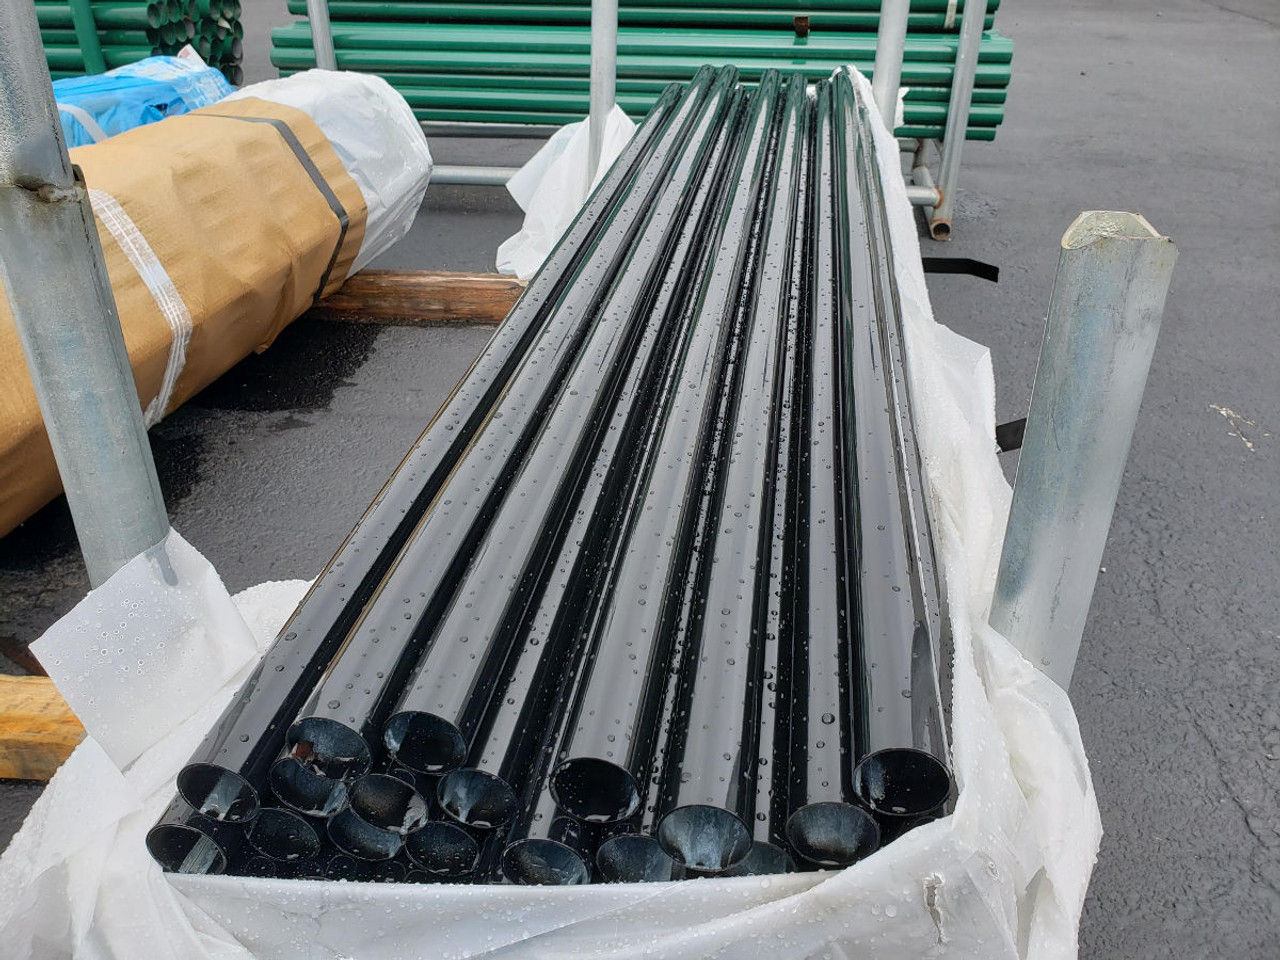 Black Poly Powder Coated SF40 Chain Link Fence Pipe - Representative Image. Actual Product May Vary in Size or Color.